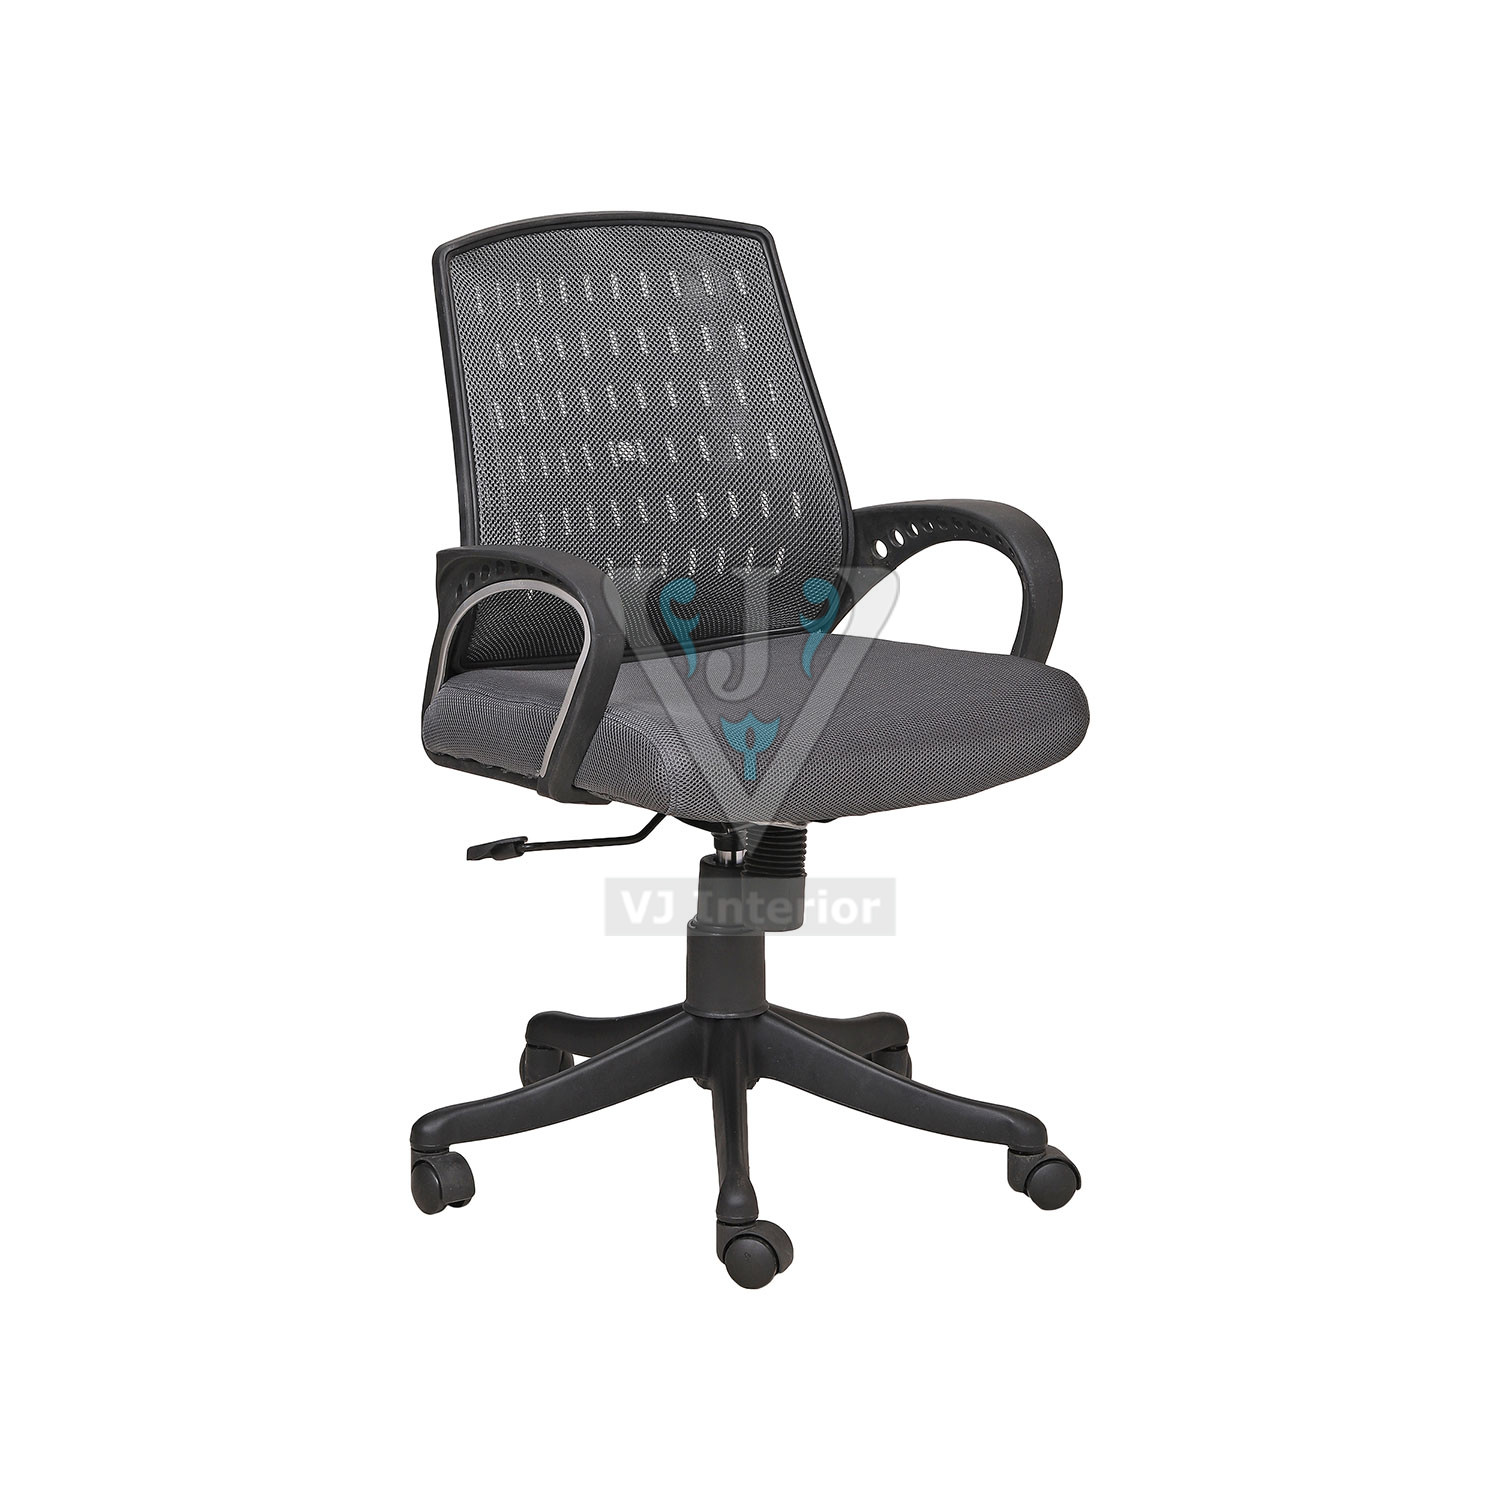 Wondrous Low Back Visitor Office Chair In Black Theyellowbook Wood Chair Design Ideas Theyellowbookinfo